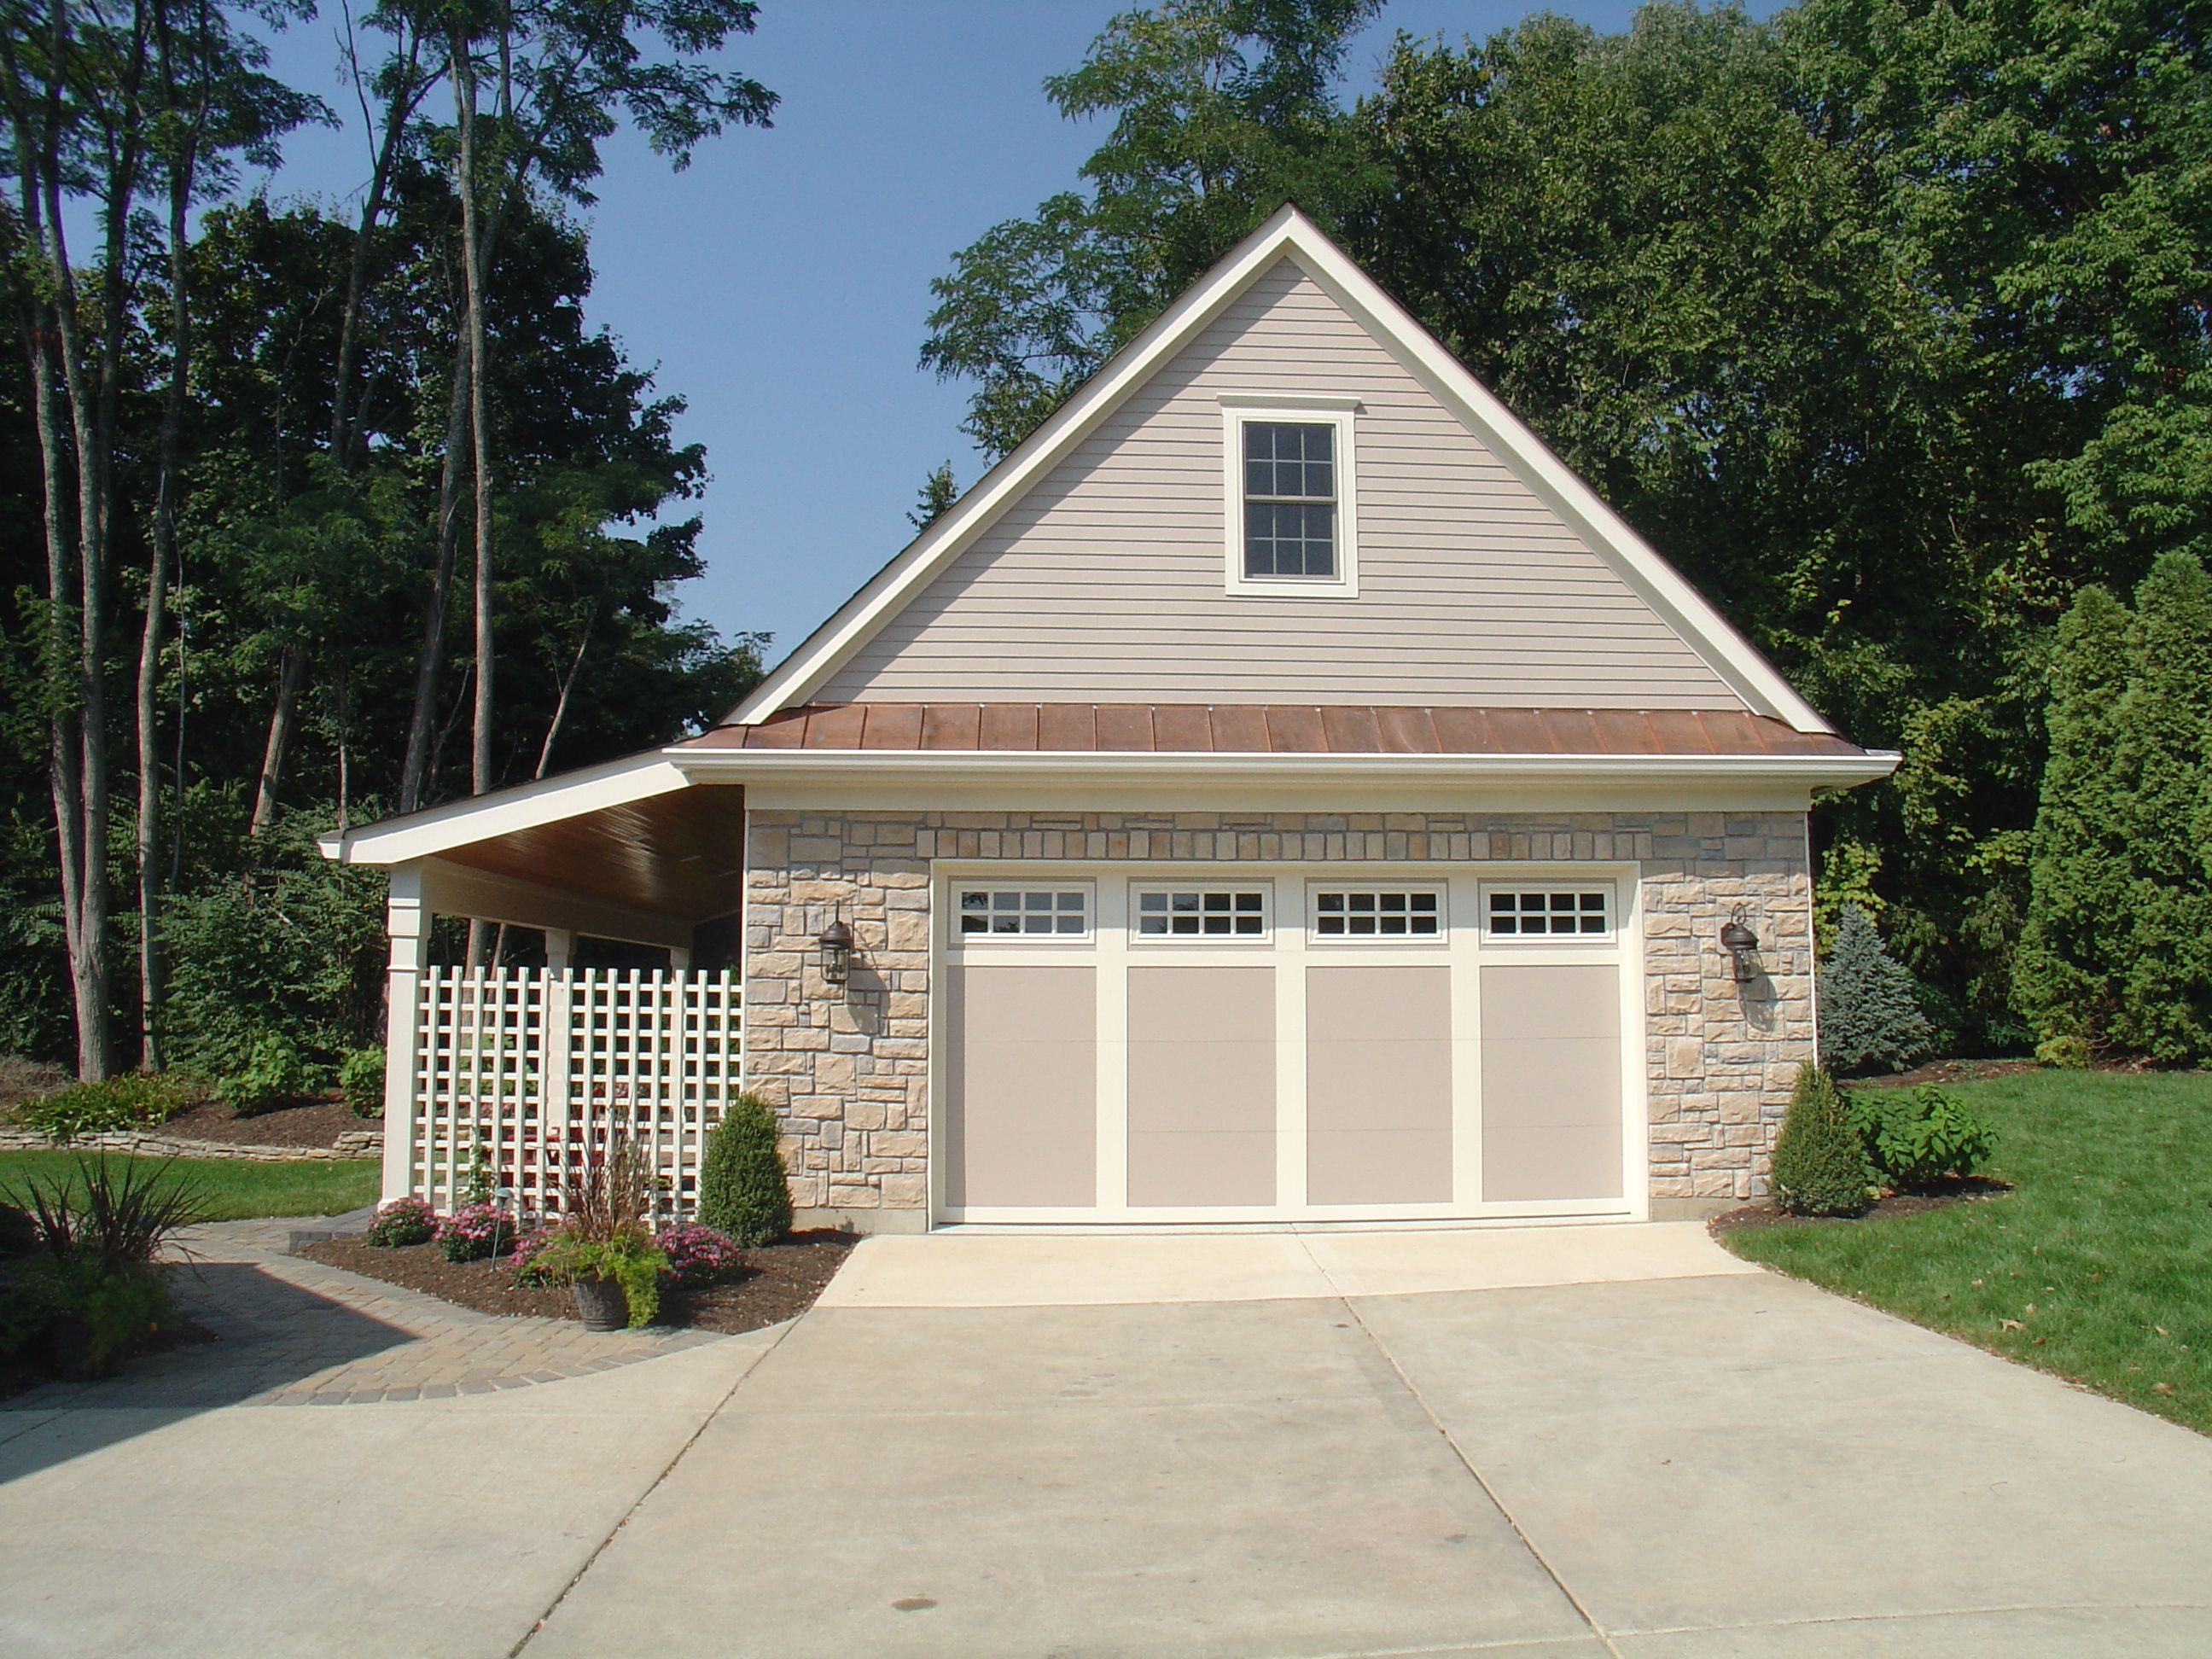 Another version of a detached garage with porch to the for Carport garage plans